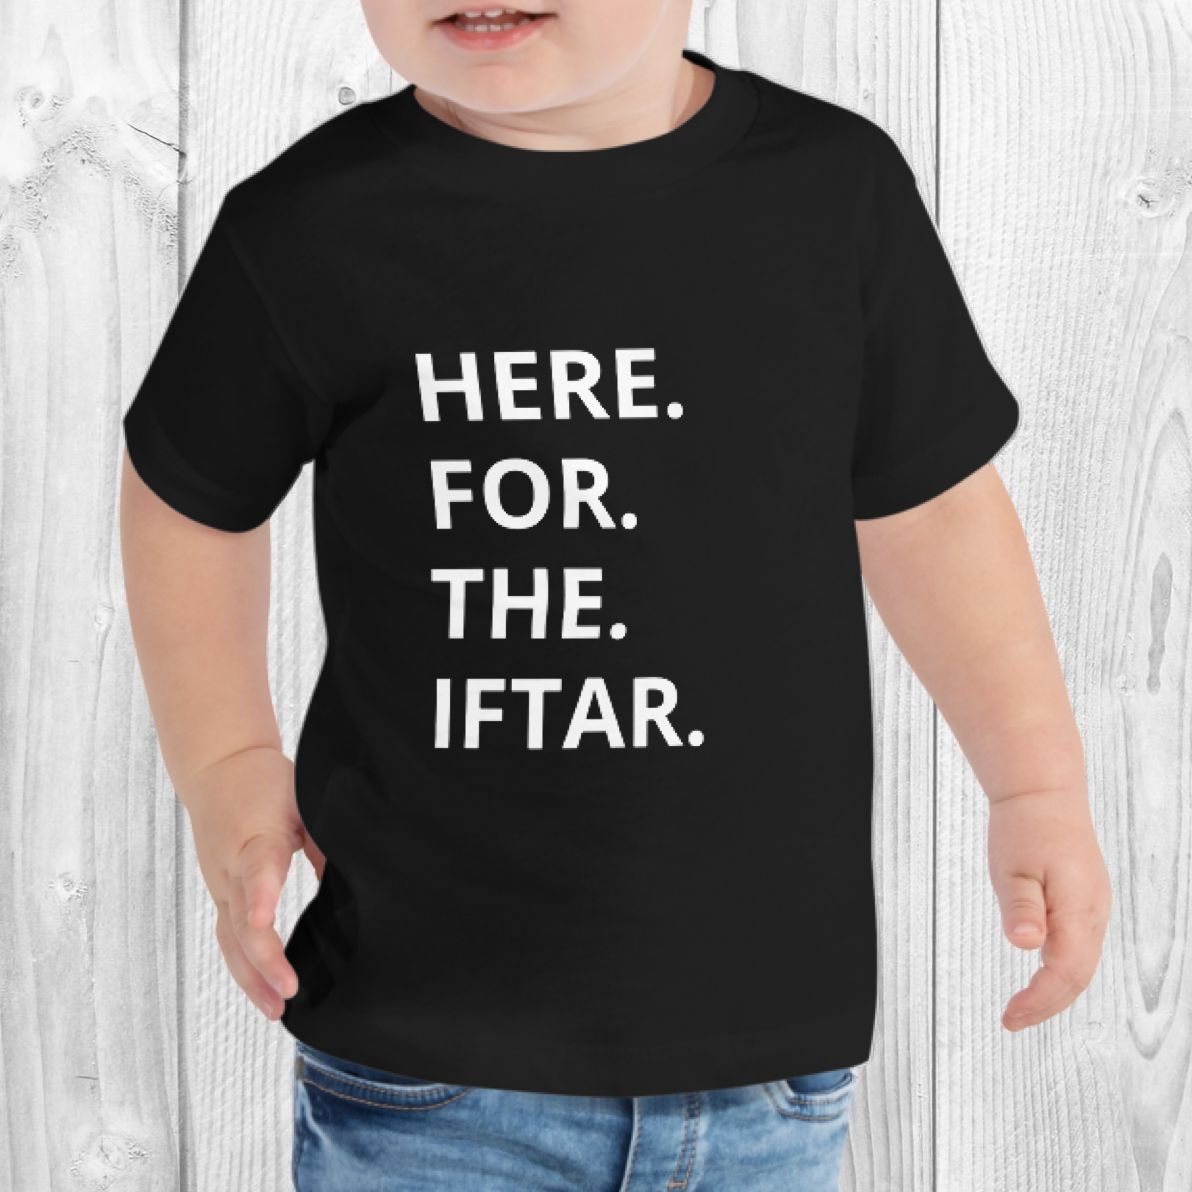 'Here for the Iftar' Toddler Tee